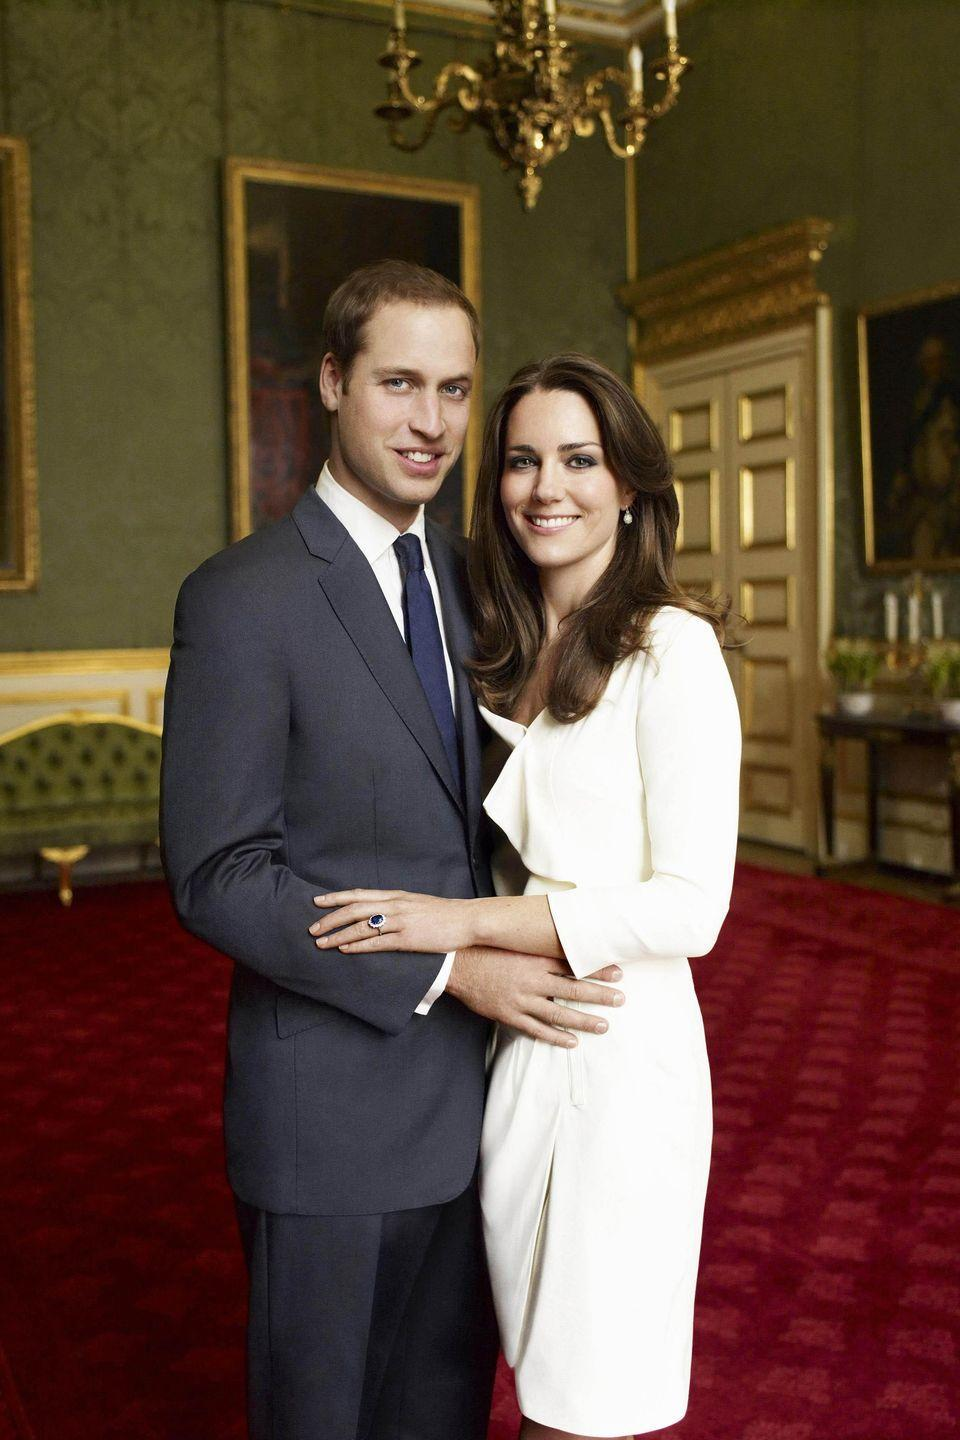 """<p>A month after announcing their engagement in November 2010, Prince William and Kate Middleton released their official engagement portraits, shot by Mario Testino in the historic chamber of <a href=""""http://people.com/royals/prince-harry-meghan-markle-engagement-photos-2/"""" rel=""""nofollow noopener"""" target=""""_blank"""" data-ylk=""""slk:Clarence House"""" class=""""link rapid-noclick-resp"""">Clarence House</a>. The couple wed four months later.</p>"""